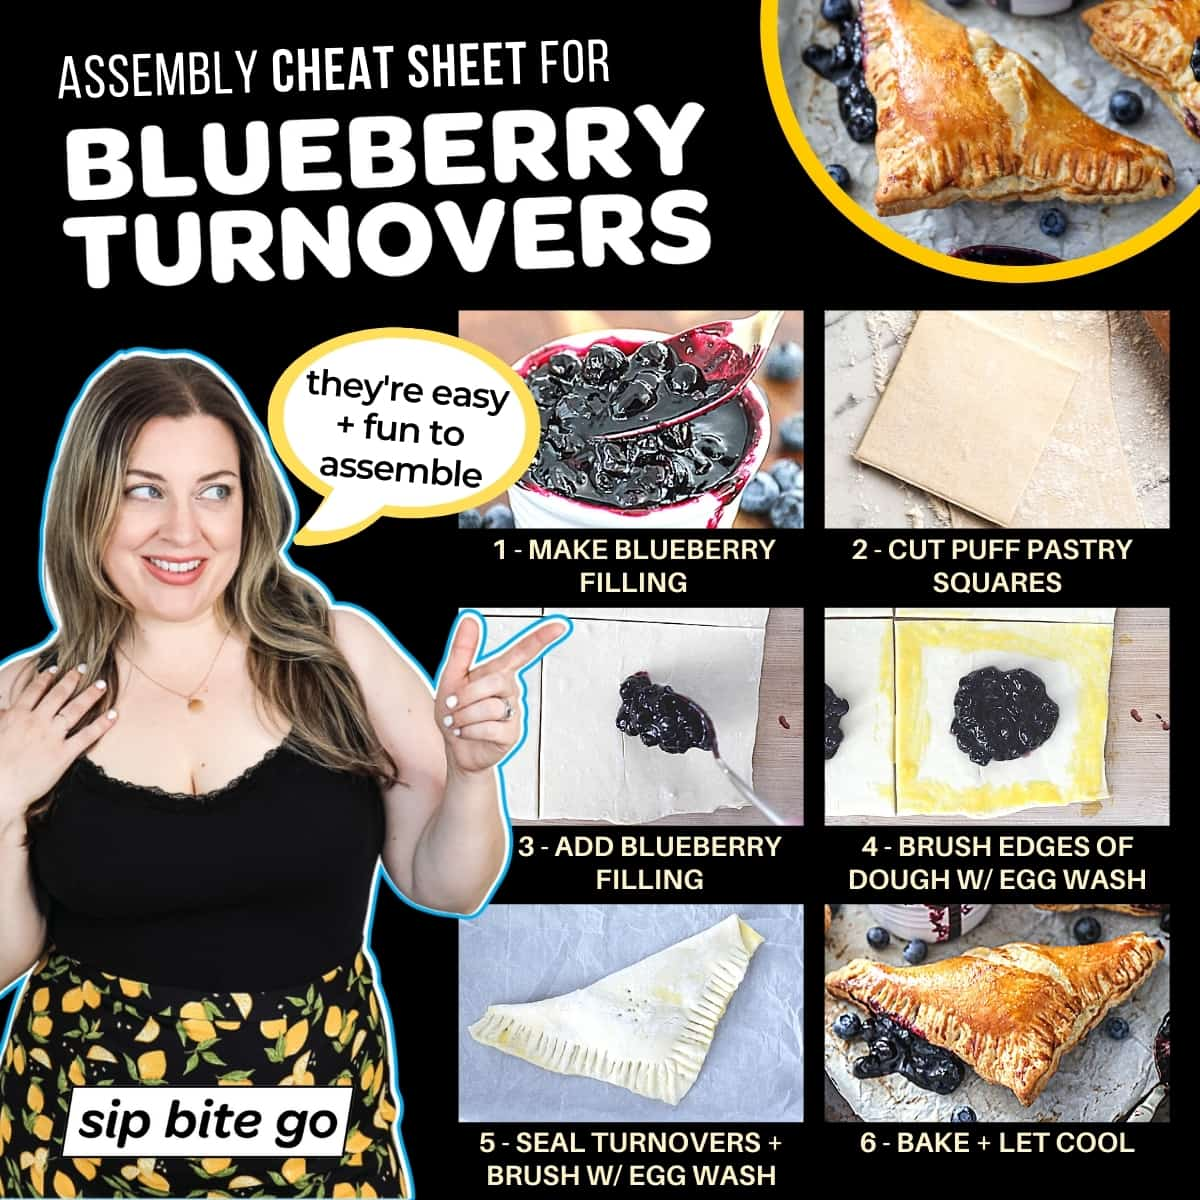 Infographic demonstrating how to make blueberry turnovers recipe with puff pastry.